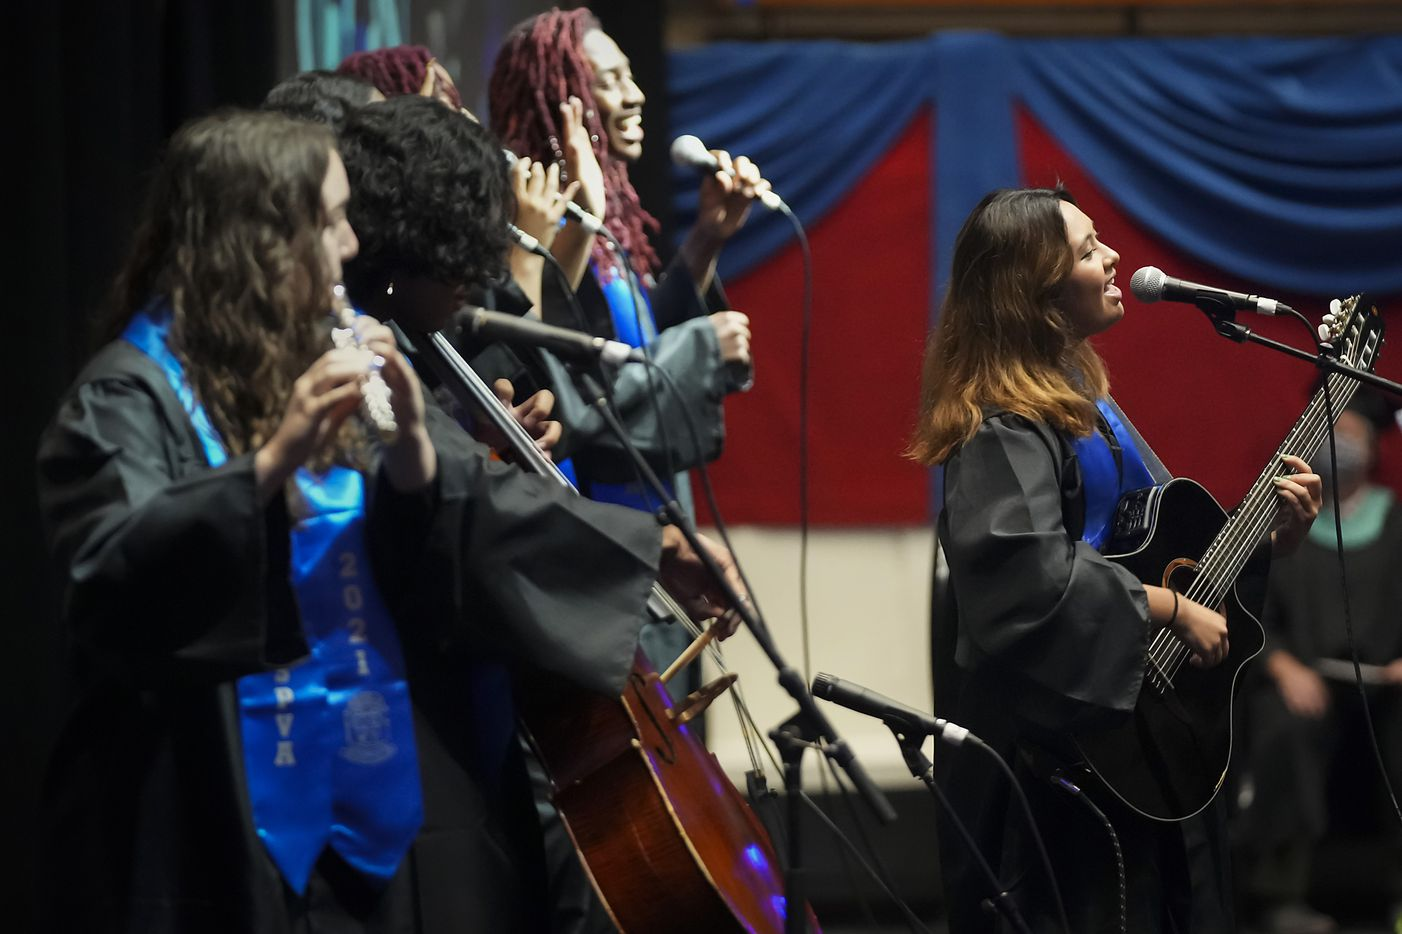 Members of the Music Conservatory perform during commencement ceremonies for Booker T. Washington HSPVA at Loos Field House on Saturday, June 19, 2021.